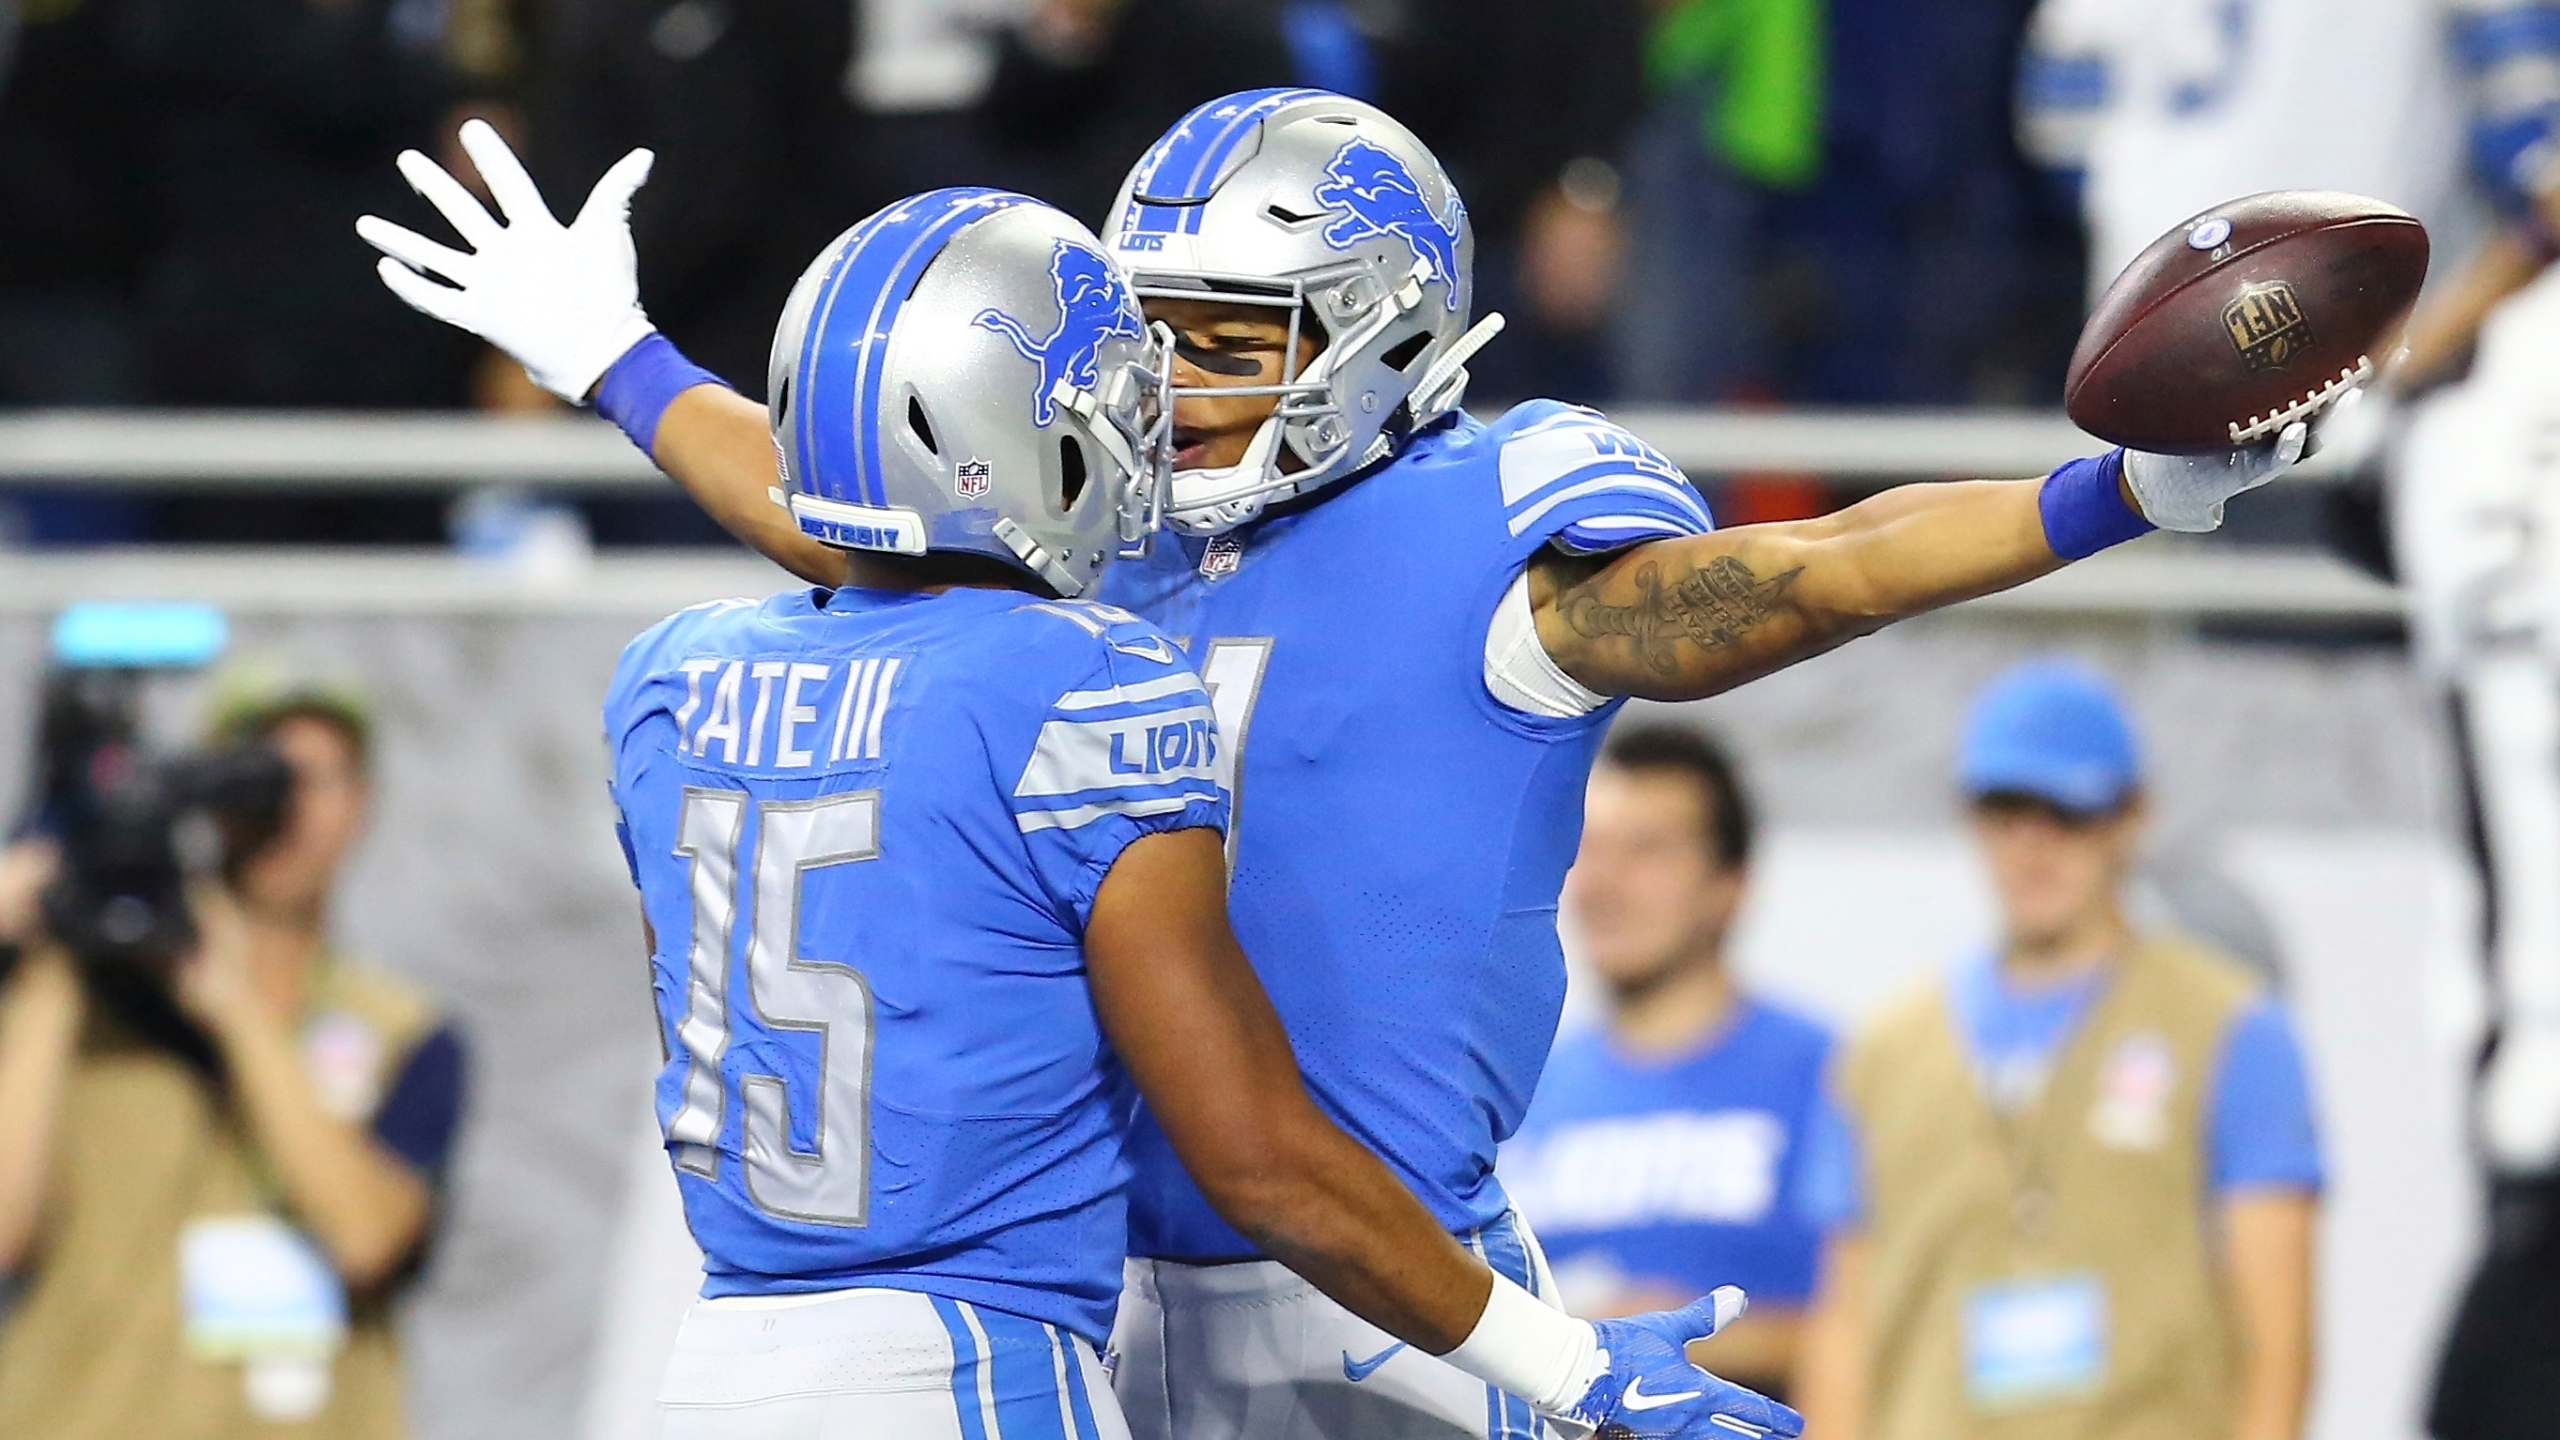 Seahawks_Lions_Football_42893-159532.jpg15269910